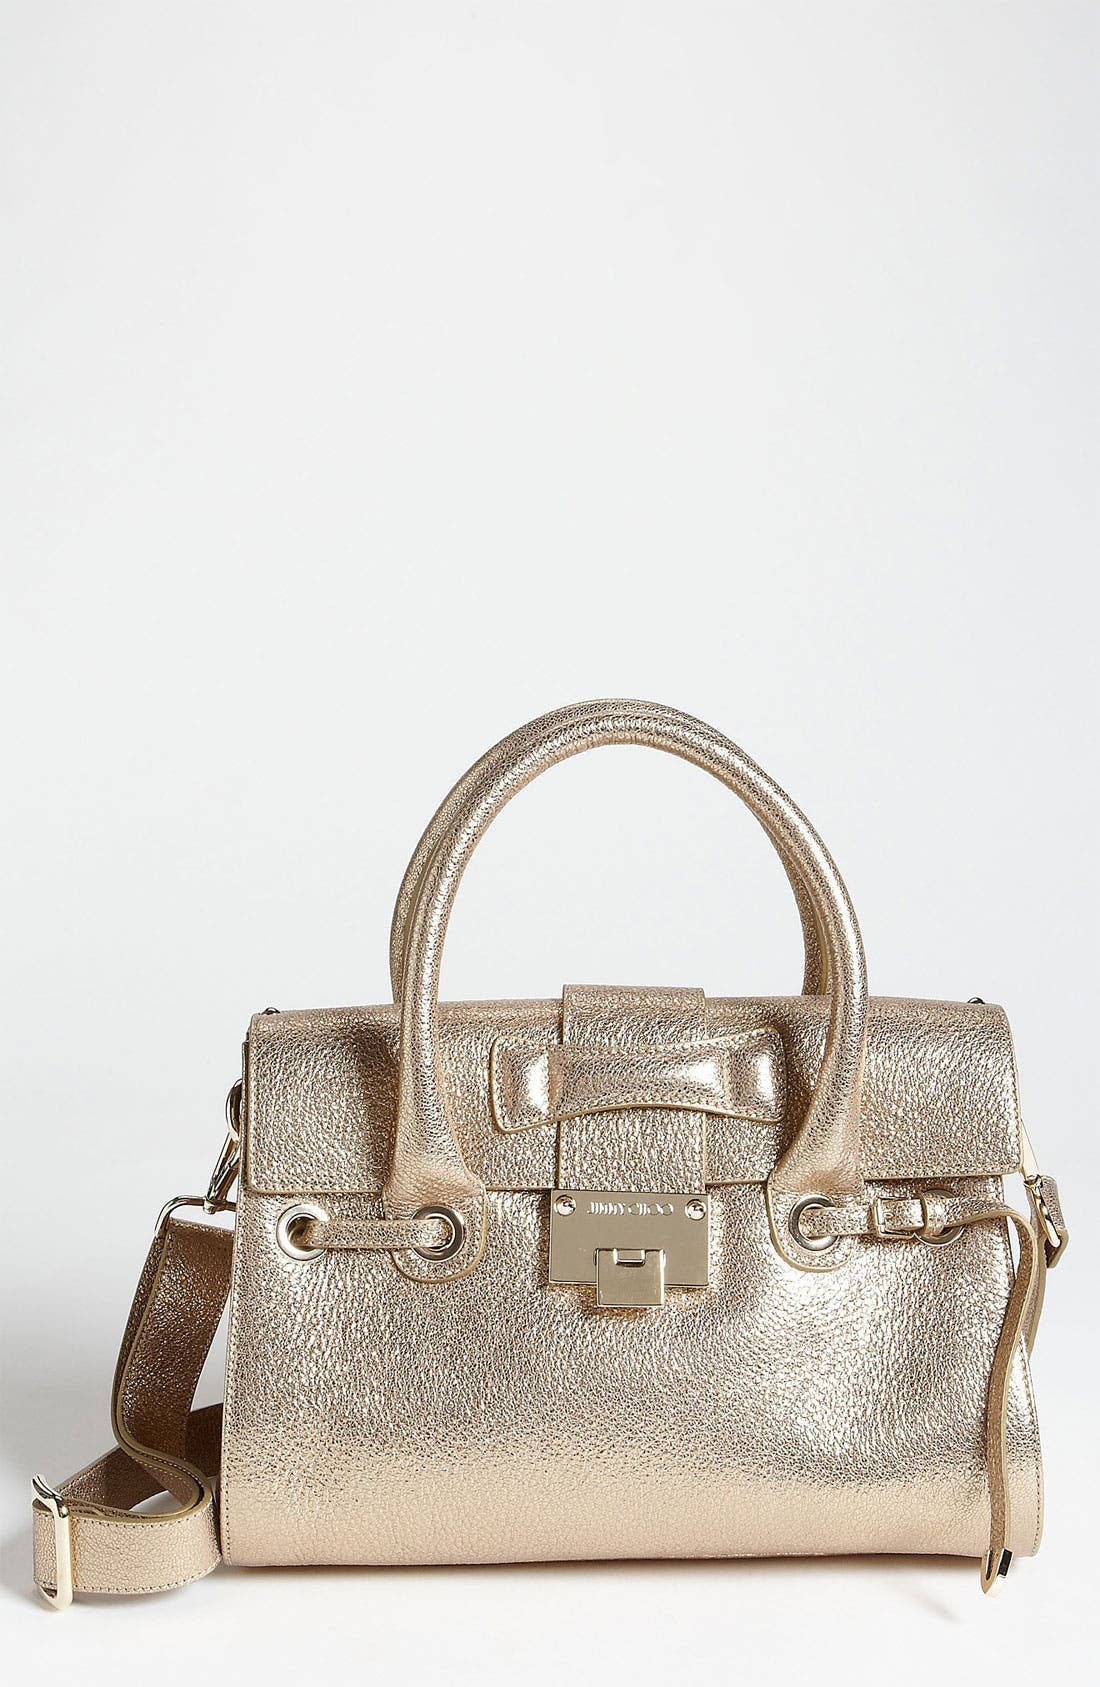 Alternate Image 1 Selected - Jimmy Choo 'Rosalie' Glitter Leather Satchel